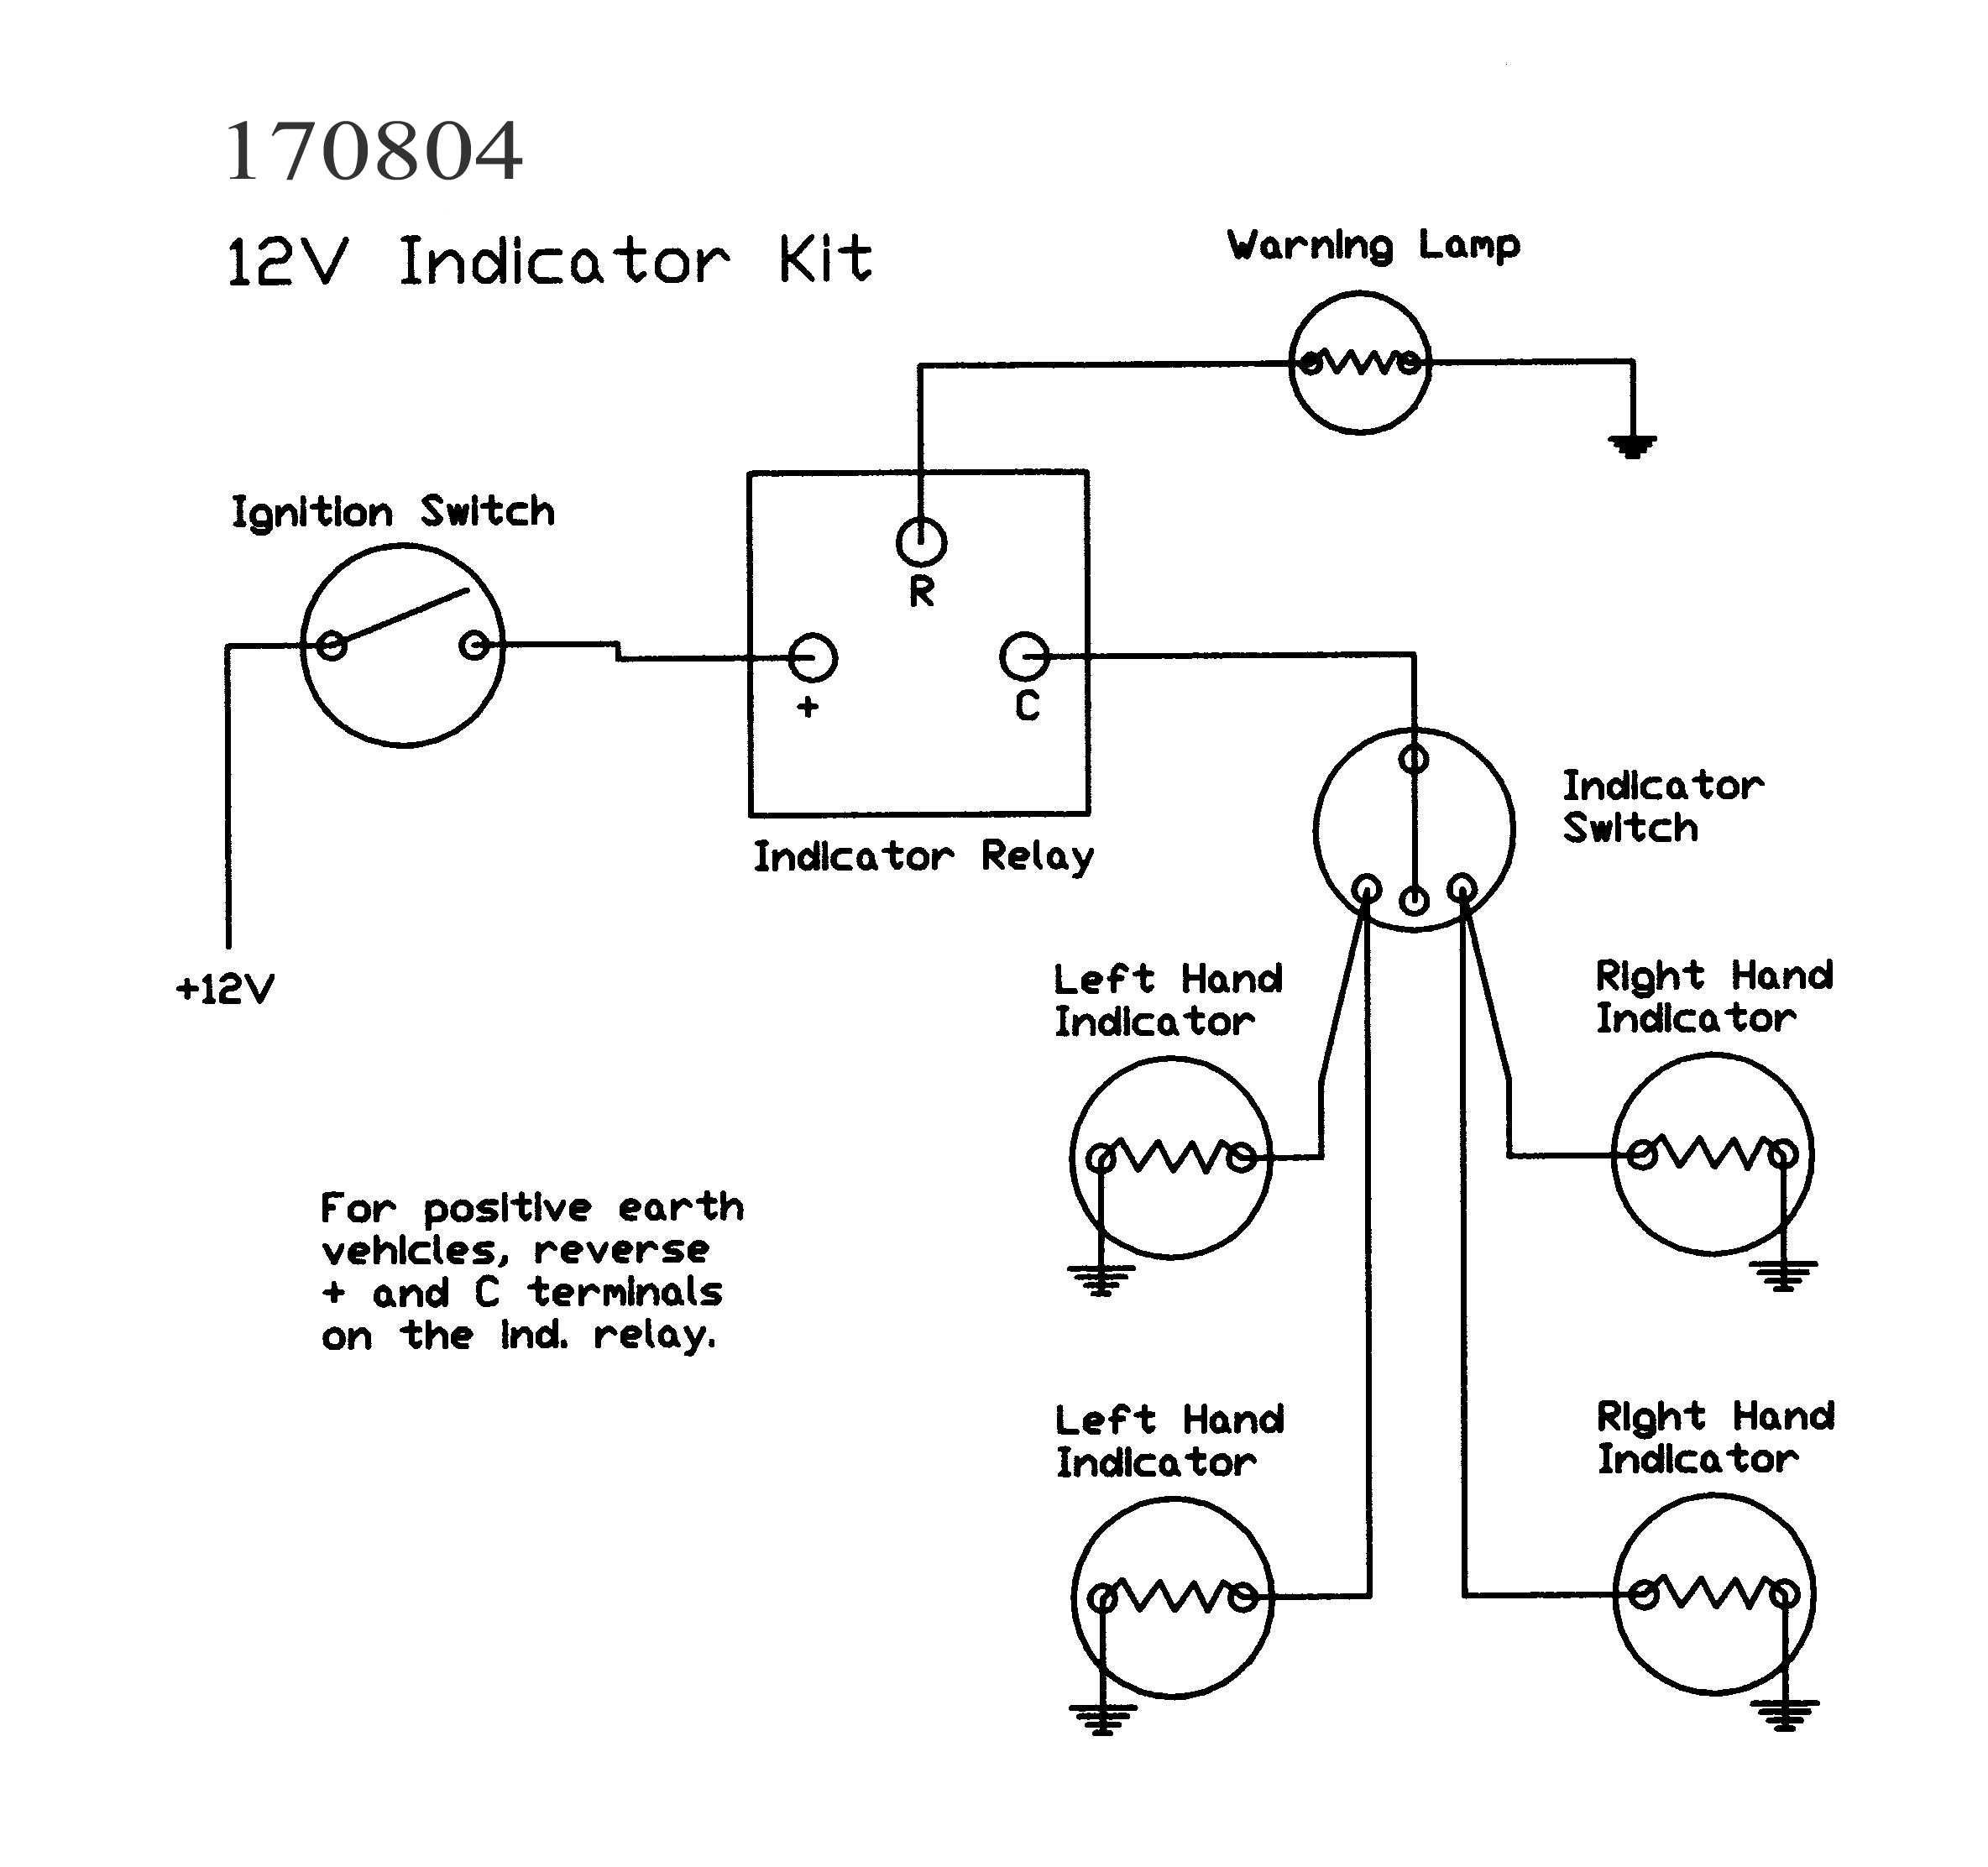 Wiring Diagram Indicator : Indicator kits without lamps